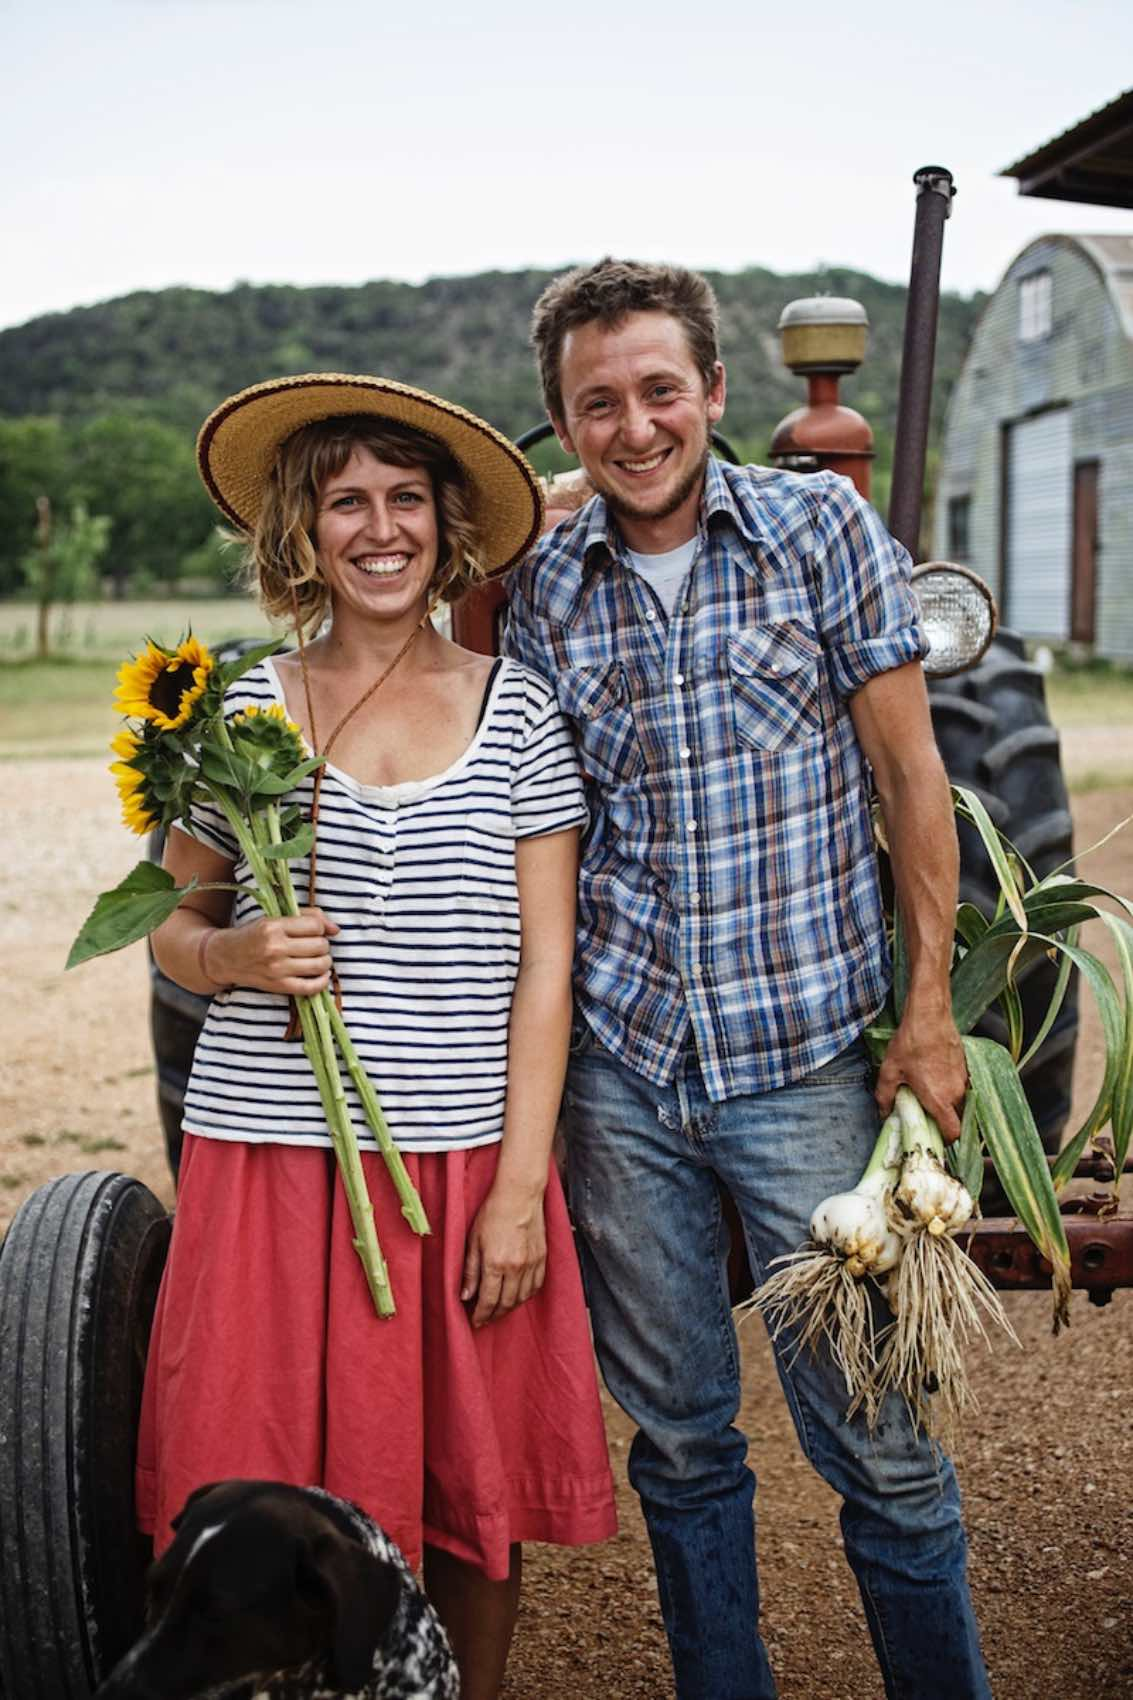 Jody Horton Photography - Farmers pose with sunflowers and green onions.